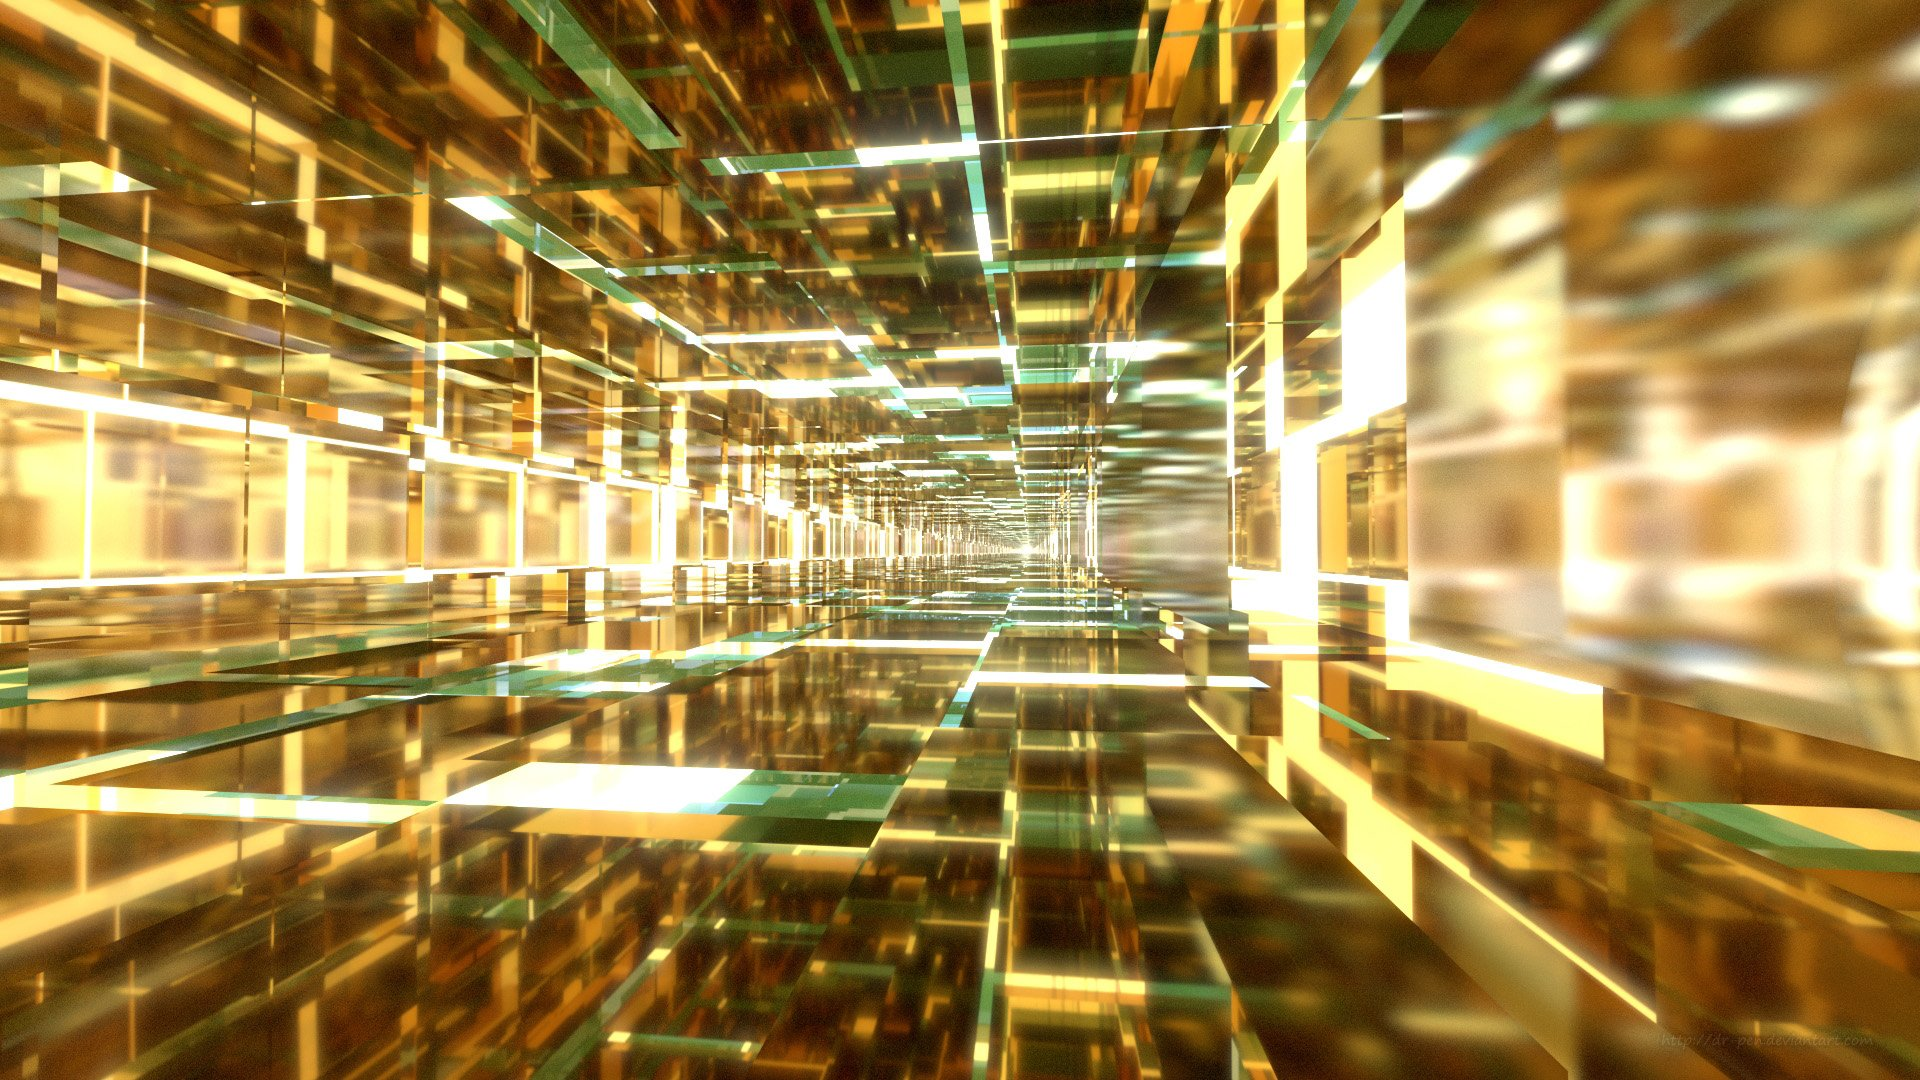 CGI - Abstract  Blender 3D Digital Yellow Tiles Square Tunnel Bright Wallpaper